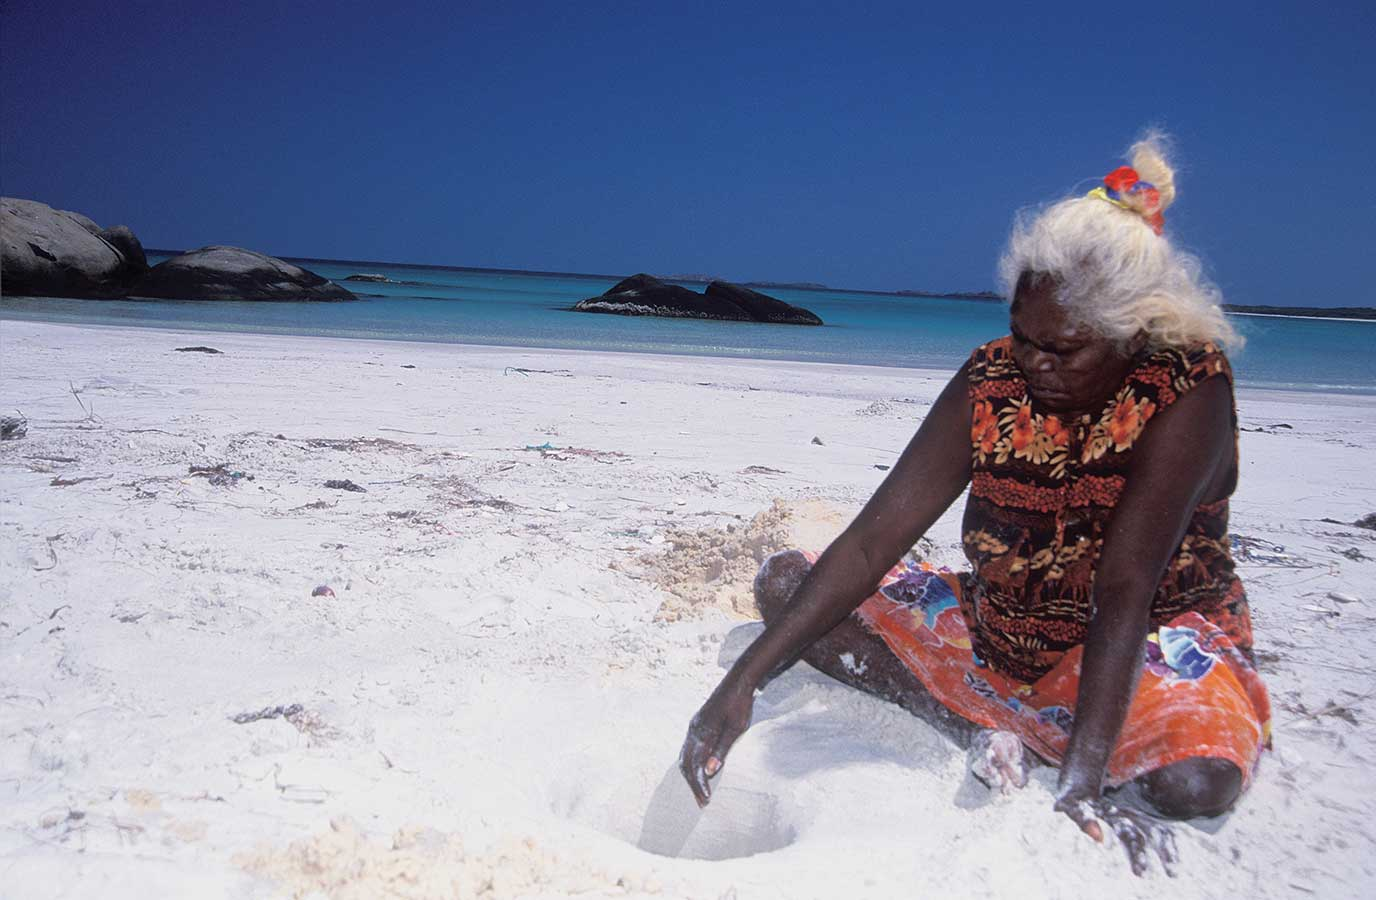 A colour photograph of Dhuwarrwarr Marika sitting on a beach, digging a hole in the white sand. She wears a brightly coloured dress and has her long grey hair tied back behind her head. She sits at the right of the photograph. The sandy beach is to the left and behind her. In the middle and left background are some large smooth boulders in the water. A distant shore appears on the horizon. The cloudless blue sky is in the top third of the photograph. - click to view larger image